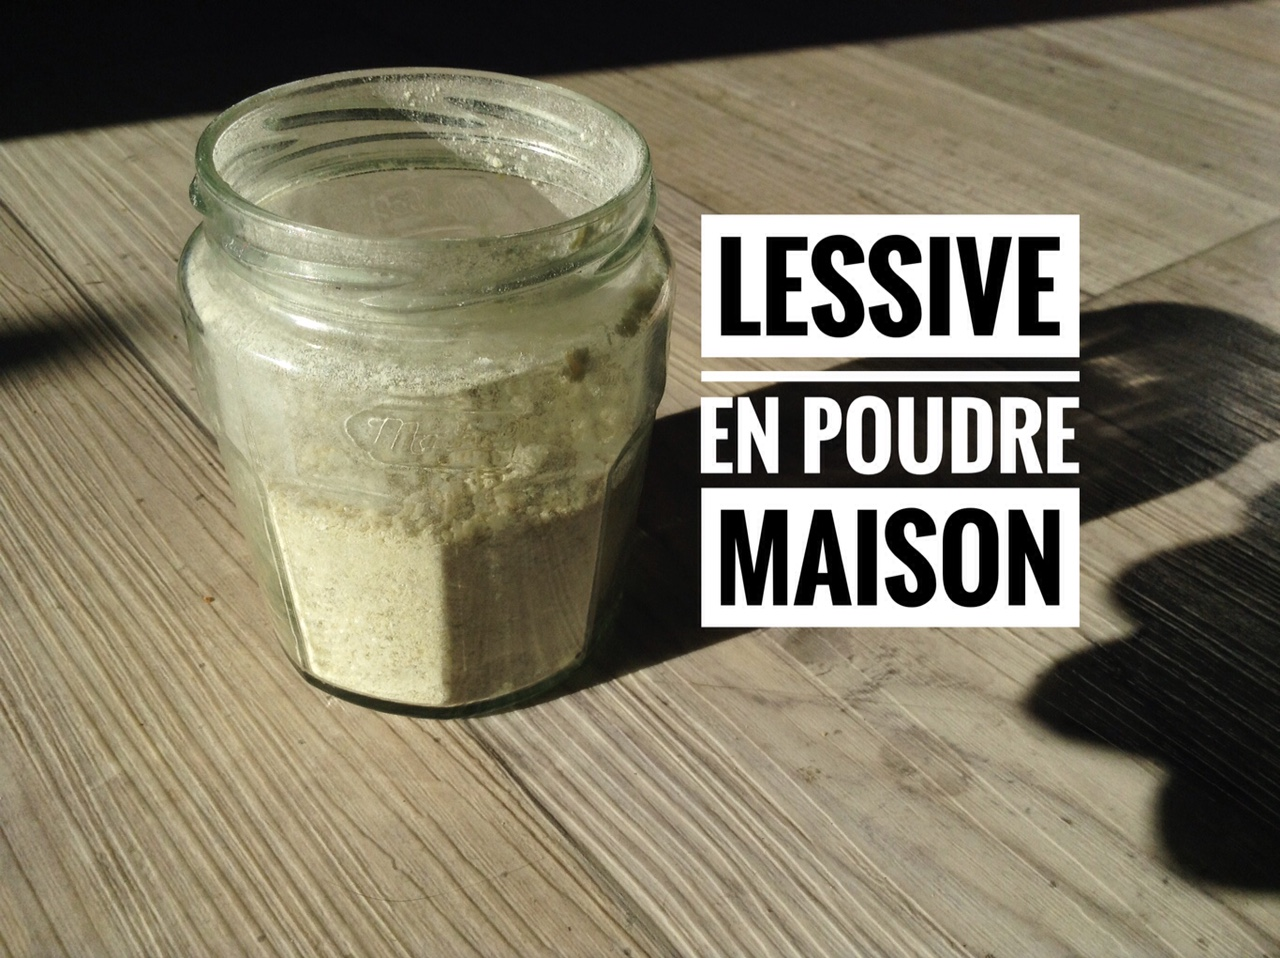 pour la maison archives recettes de cuisine avec thermomix ou pas. Black Bedroom Furniture Sets. Home Design Ideas